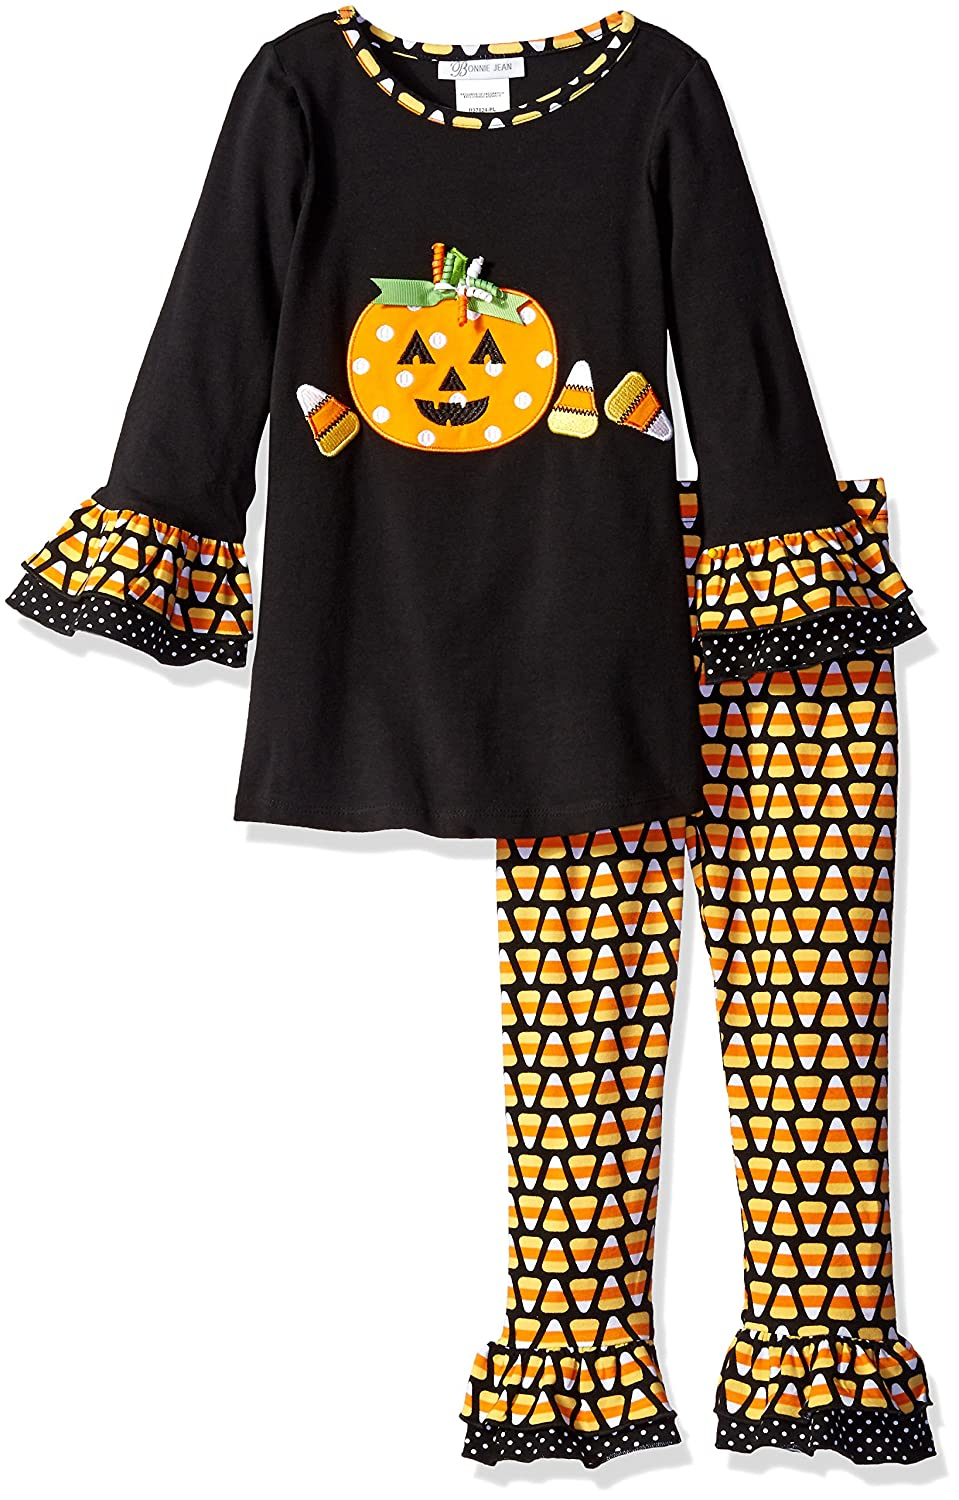 e5c55f9892567 Bonnie Jean Little Girls' Candy Corn Appliqued Halloween Legging Set,  Black, 6: Amazon.in: Clothing & Accessories